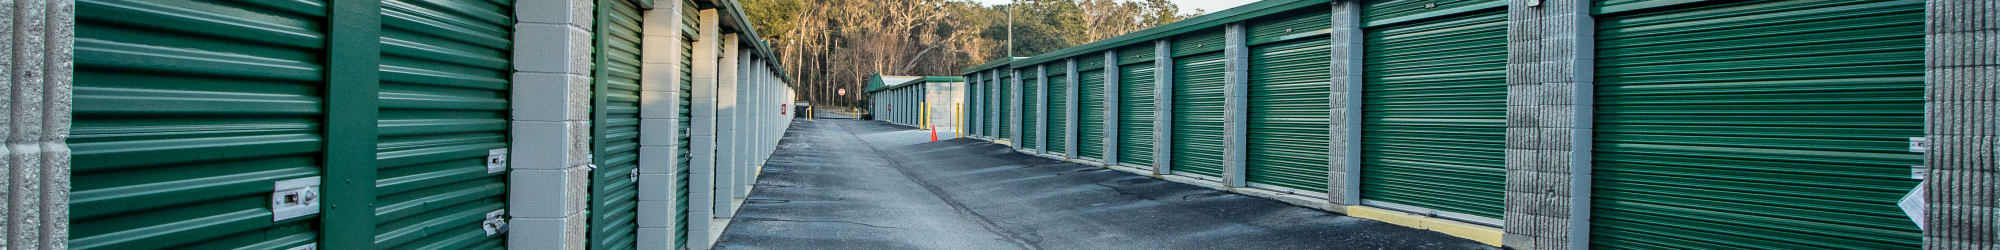 Get hours and directions to Neighborhood Storage in Ocala, FL